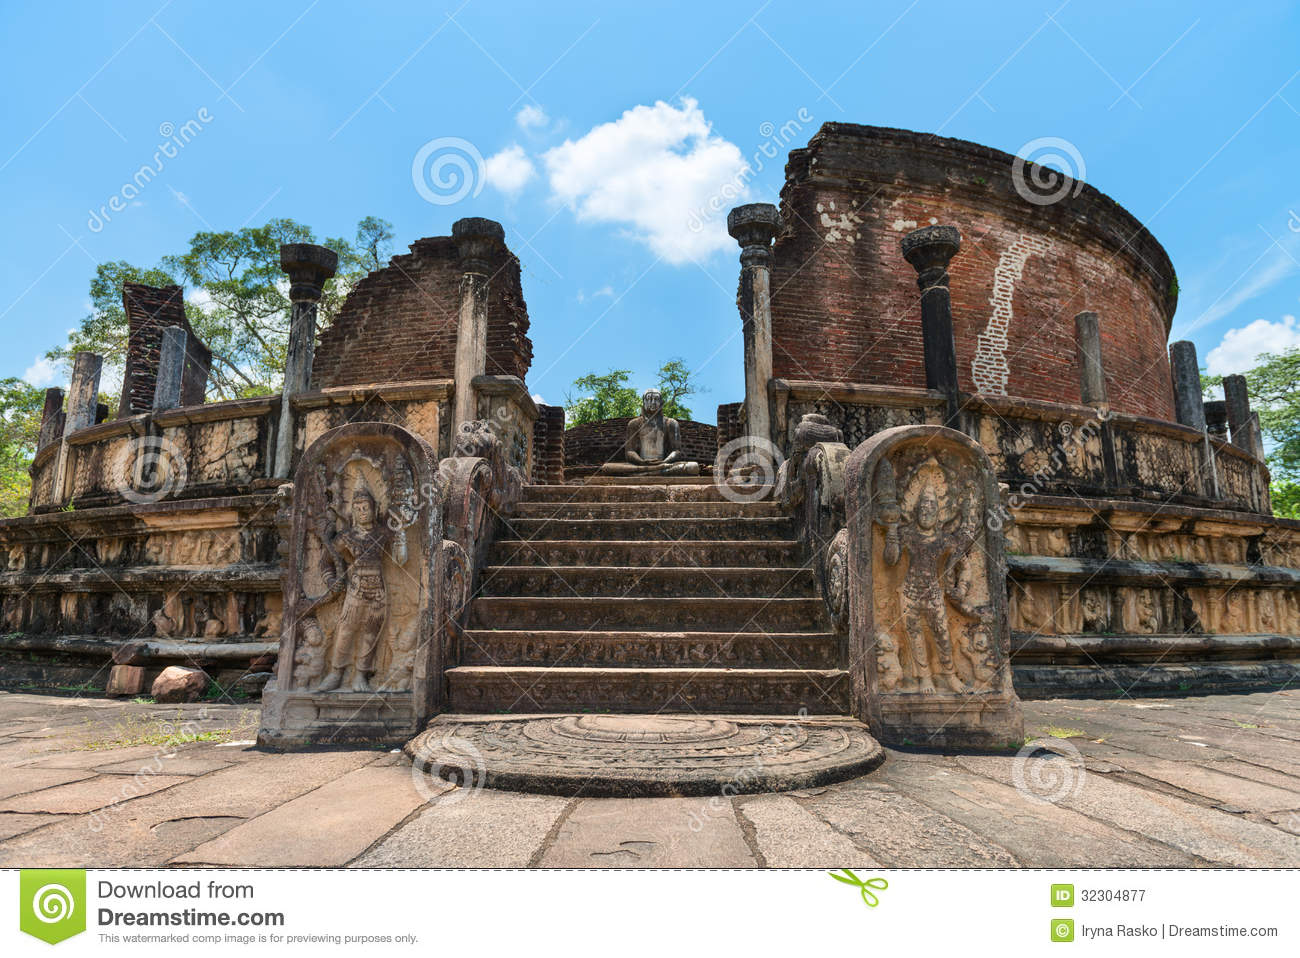 Structure unique to ancient sri lankan architecture for Structure photography